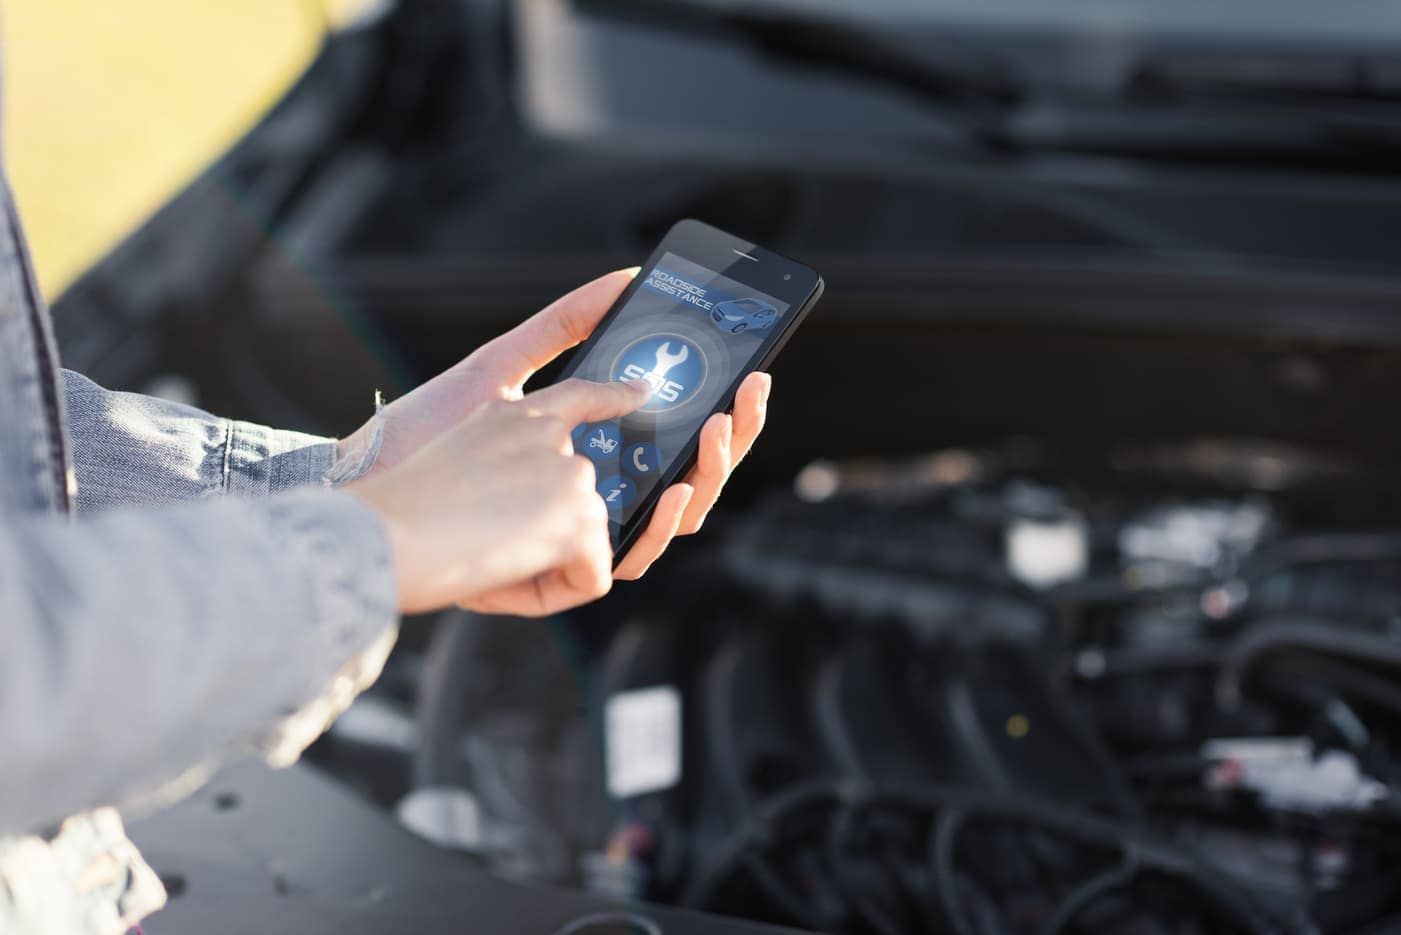 Contacting roadside assistance through phone application